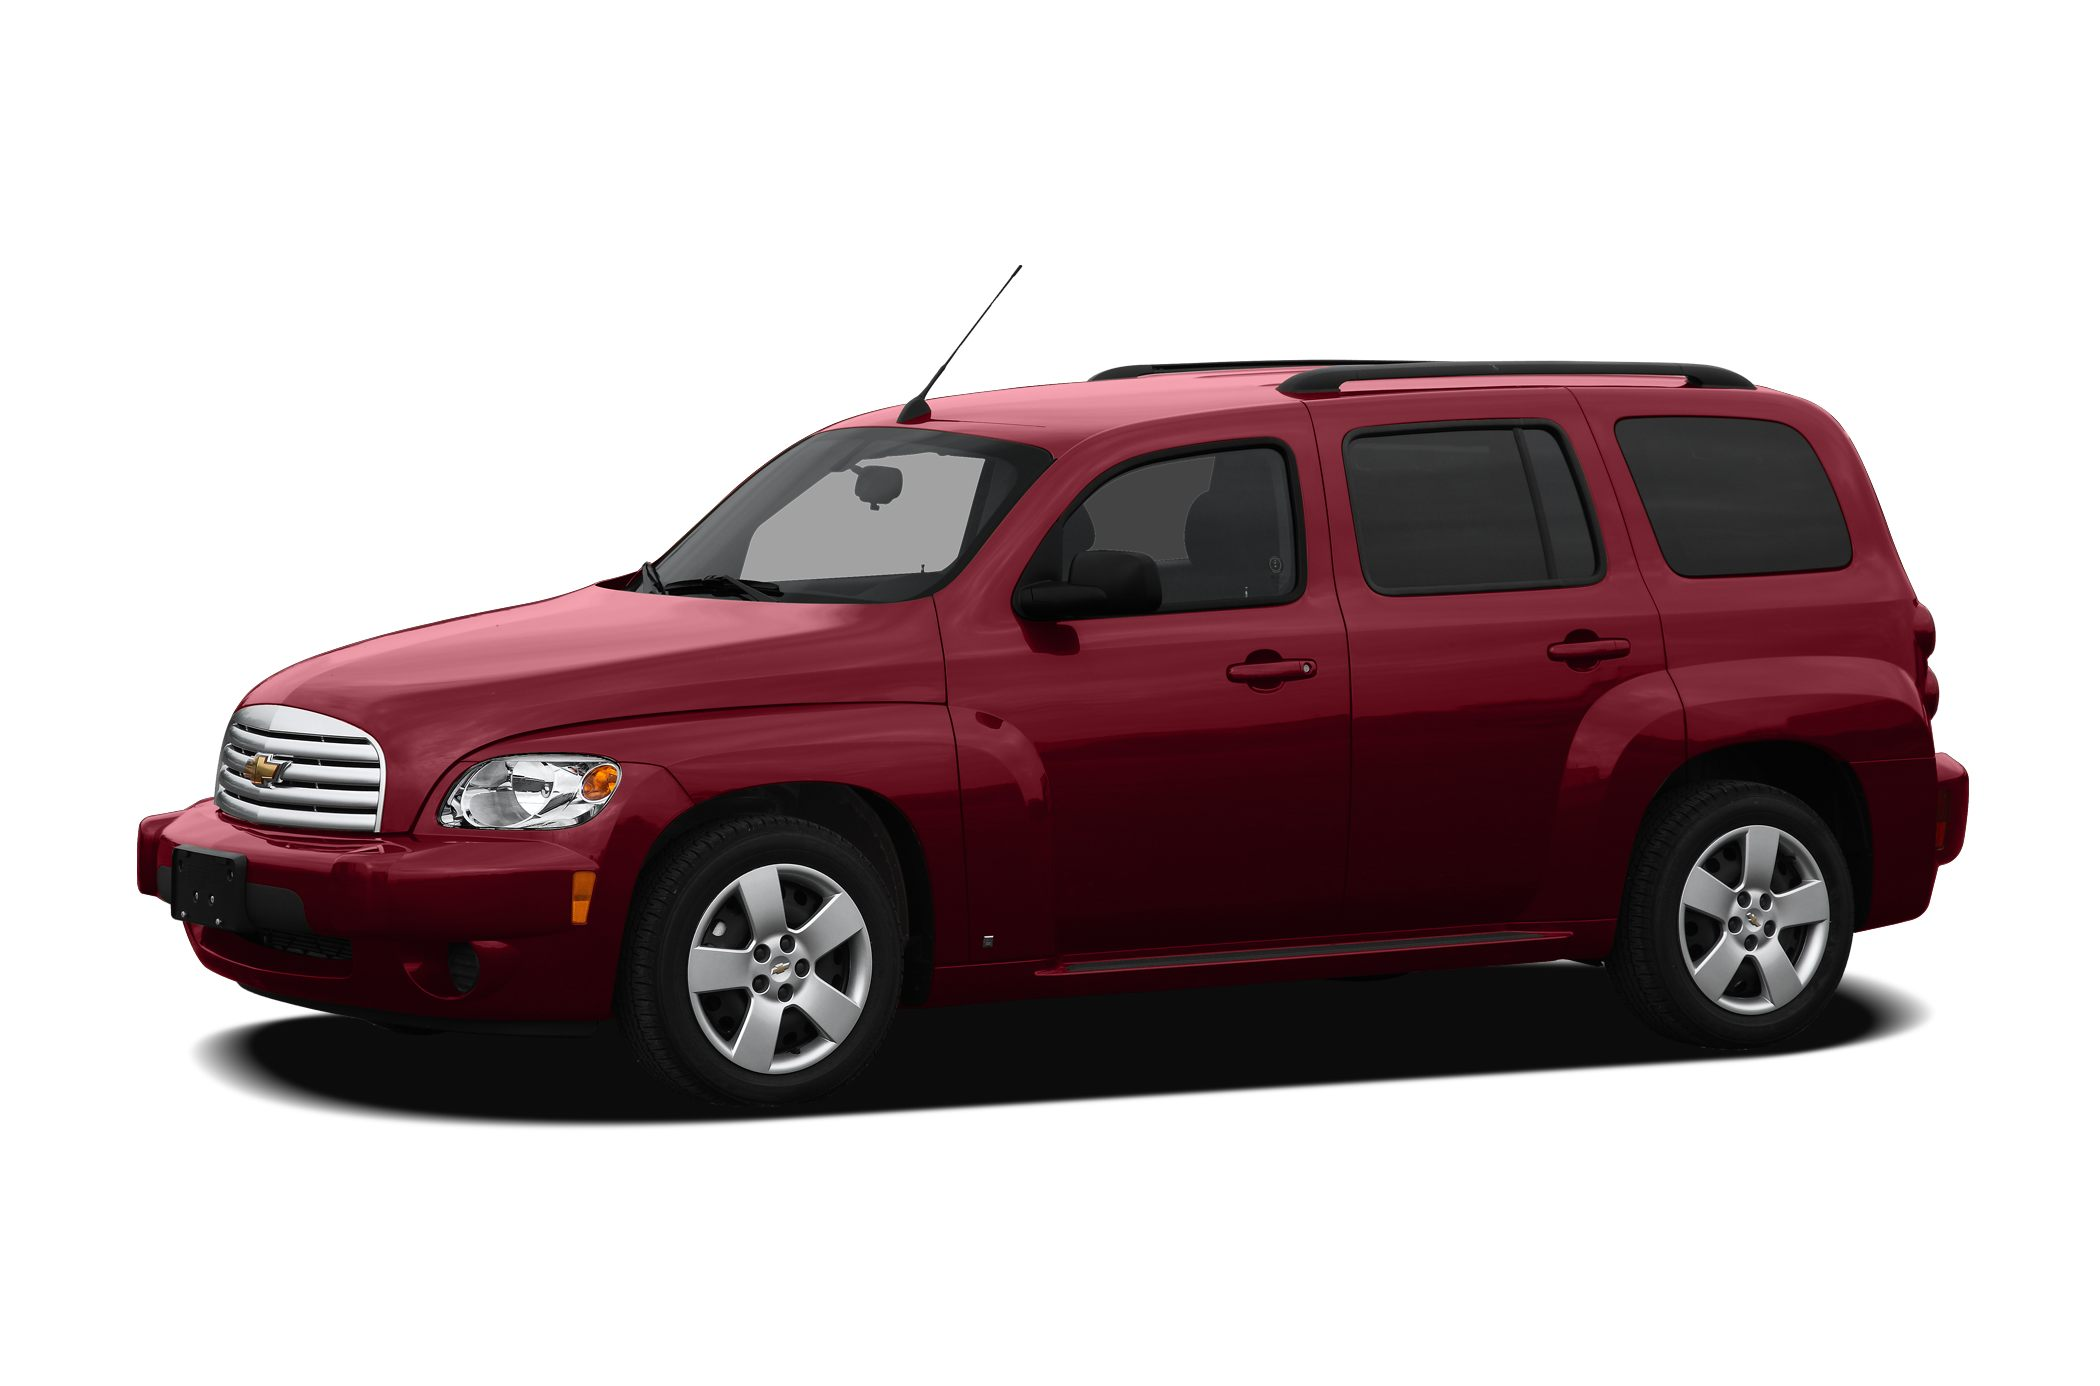 2009 Chevrolet HHR LT Wagon for sale in Branson for $0 with 111,817 miles